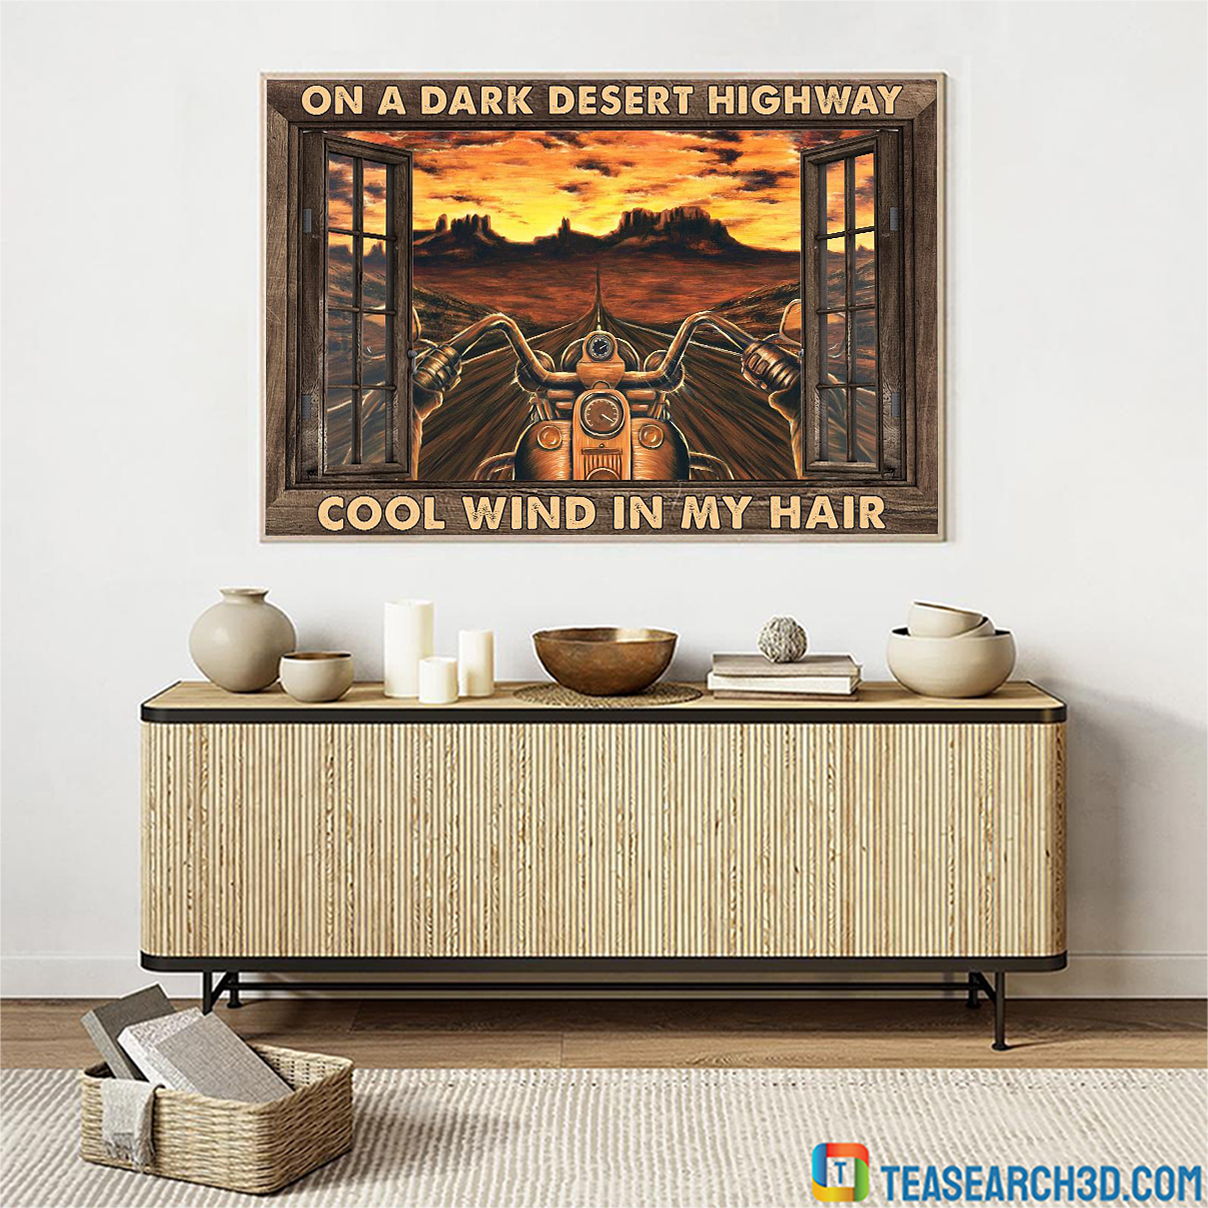 Motorcycle on a dark desert highway cool wind in my hair window poster A3